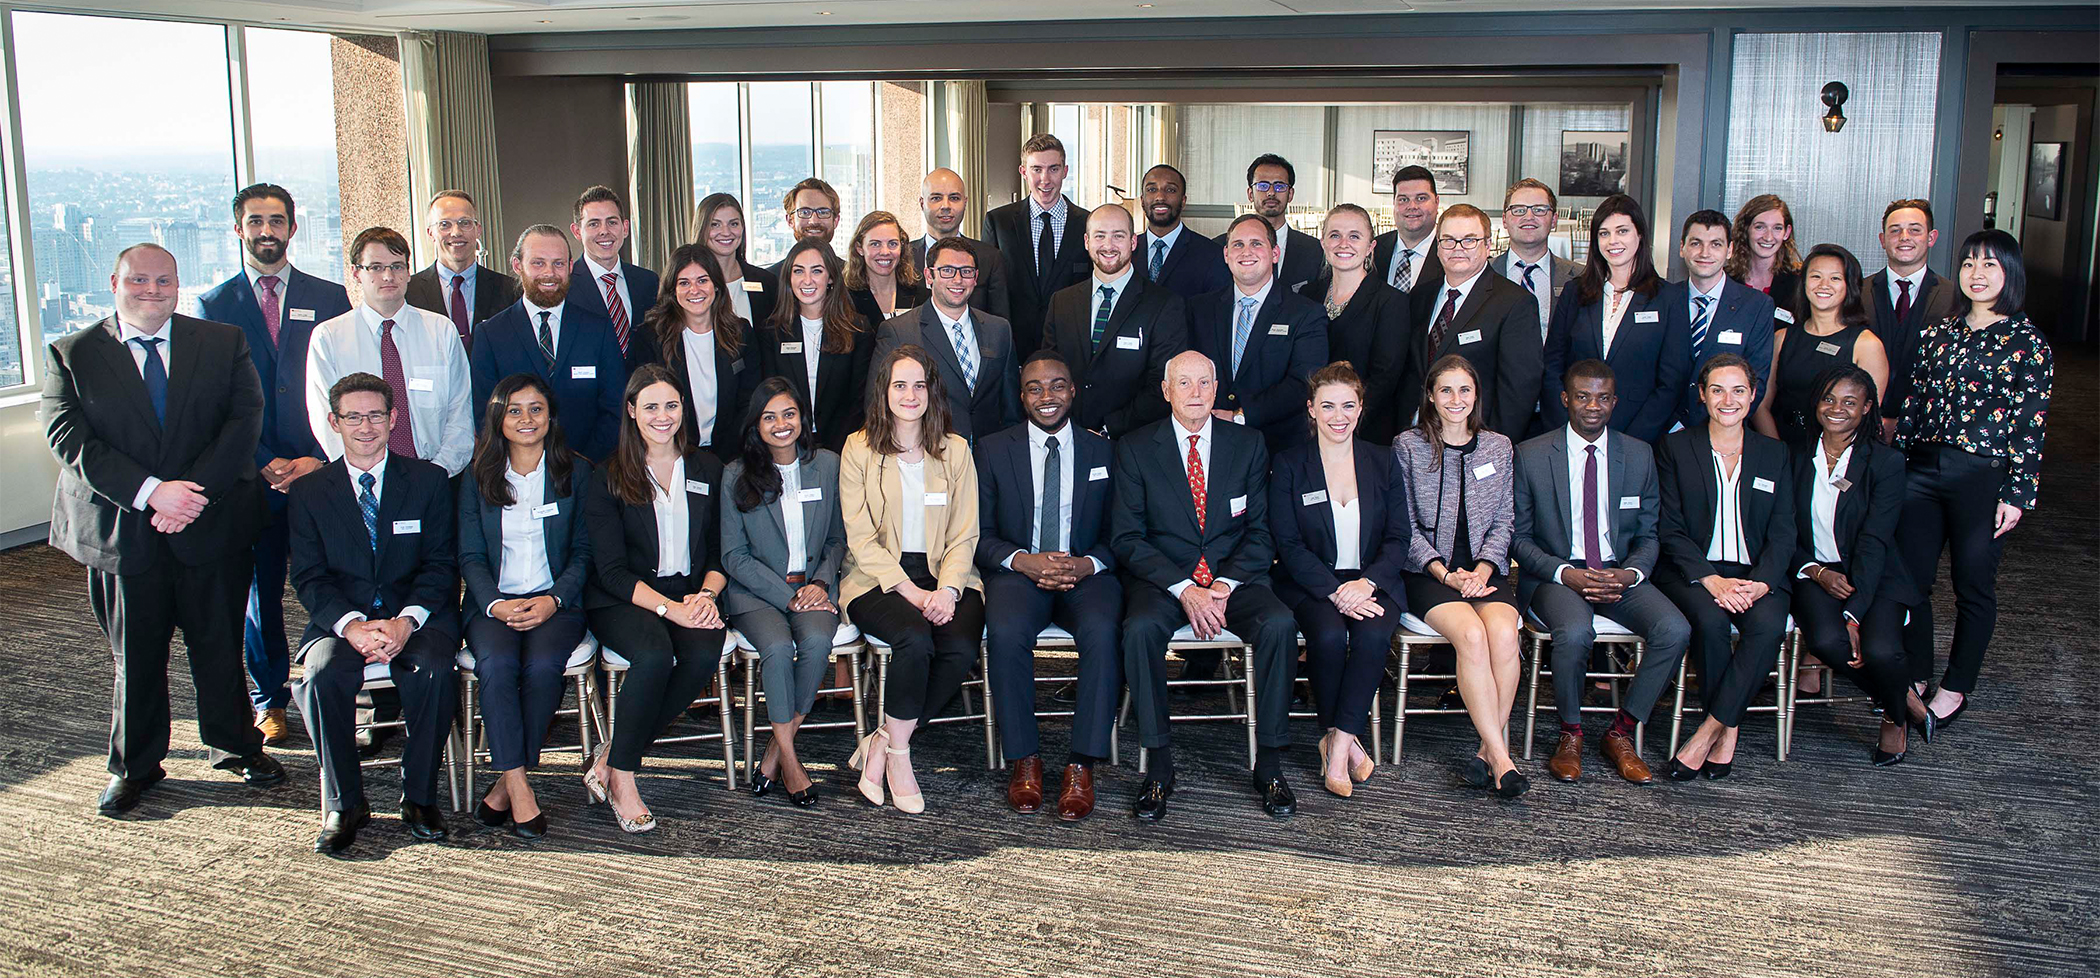 MBA first-year students at the Keys to Success dinner on 8/29/18